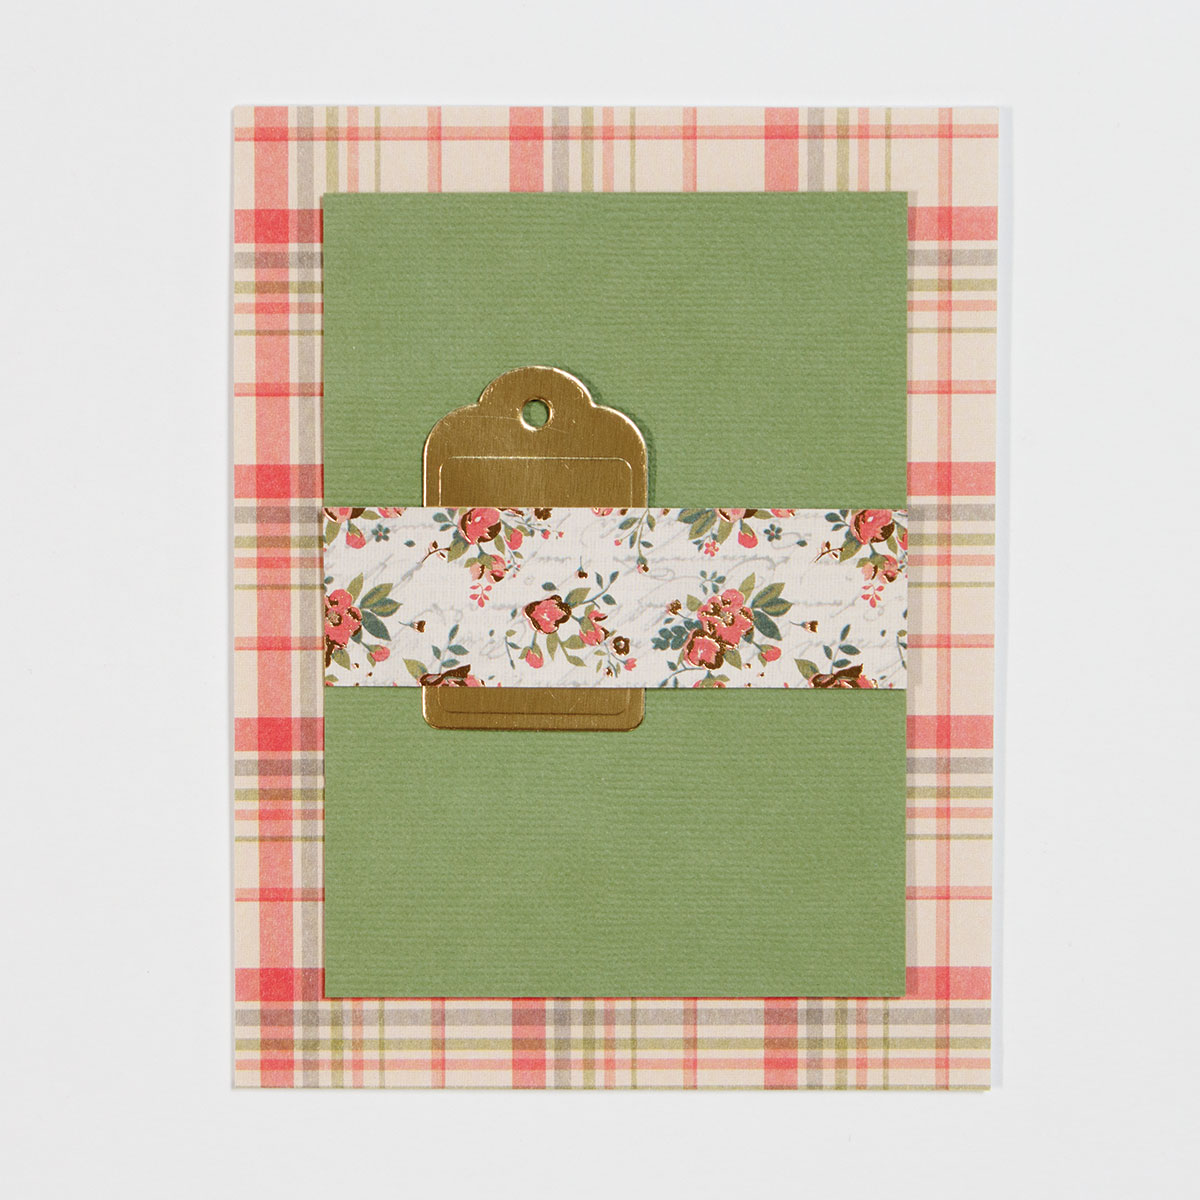 AWESOME DAY CARD: Fall Harvest, August Card Kit of the Month